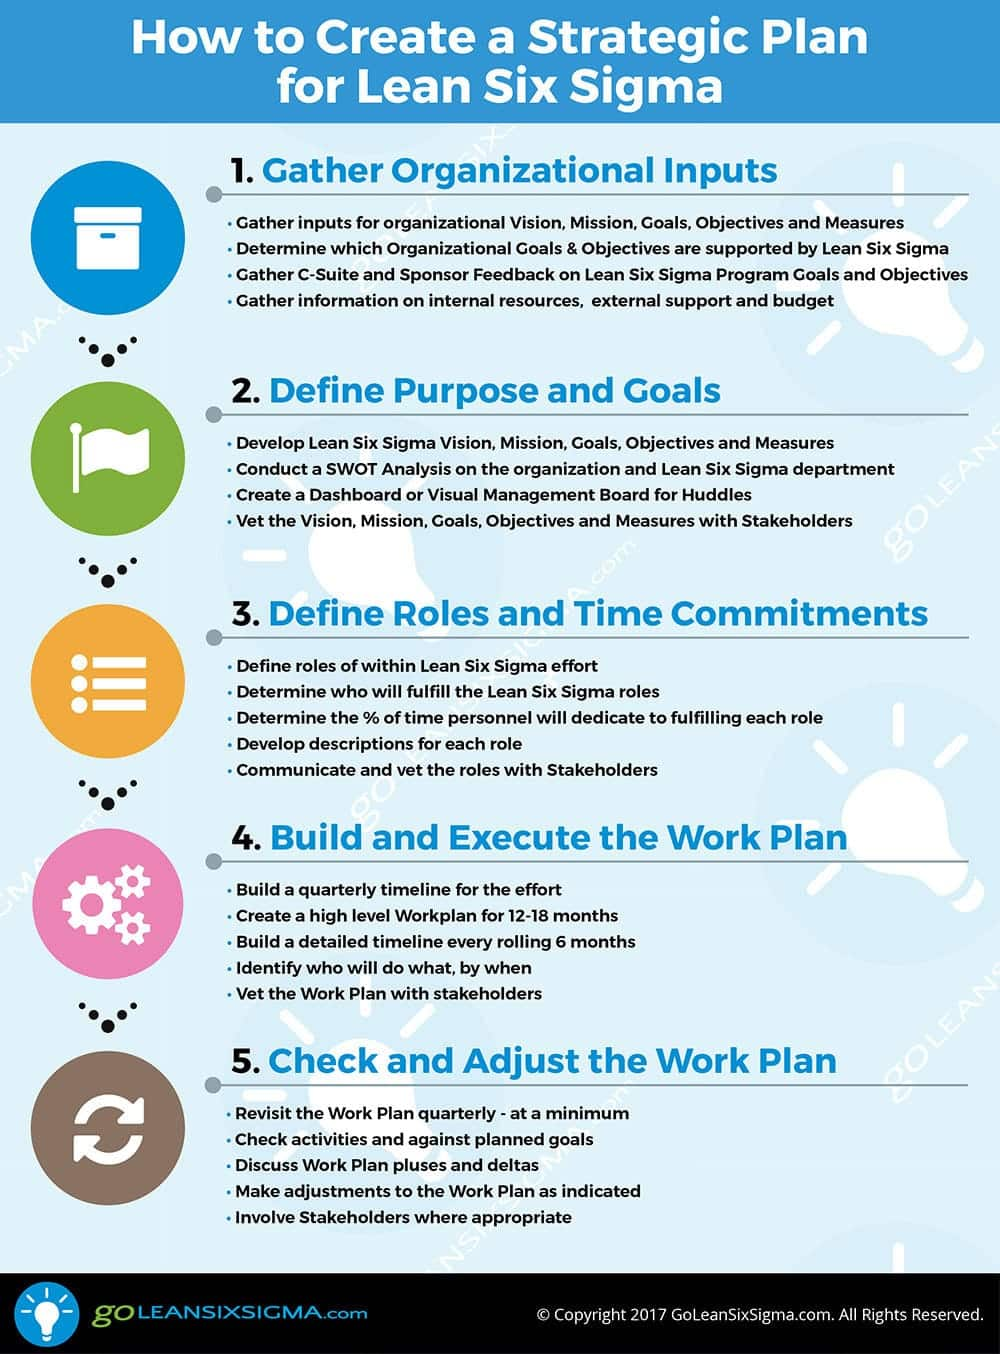 Infographic - How to Create a Strategic Plan for Lean Six Sigma - GoLeanSixSigma.com